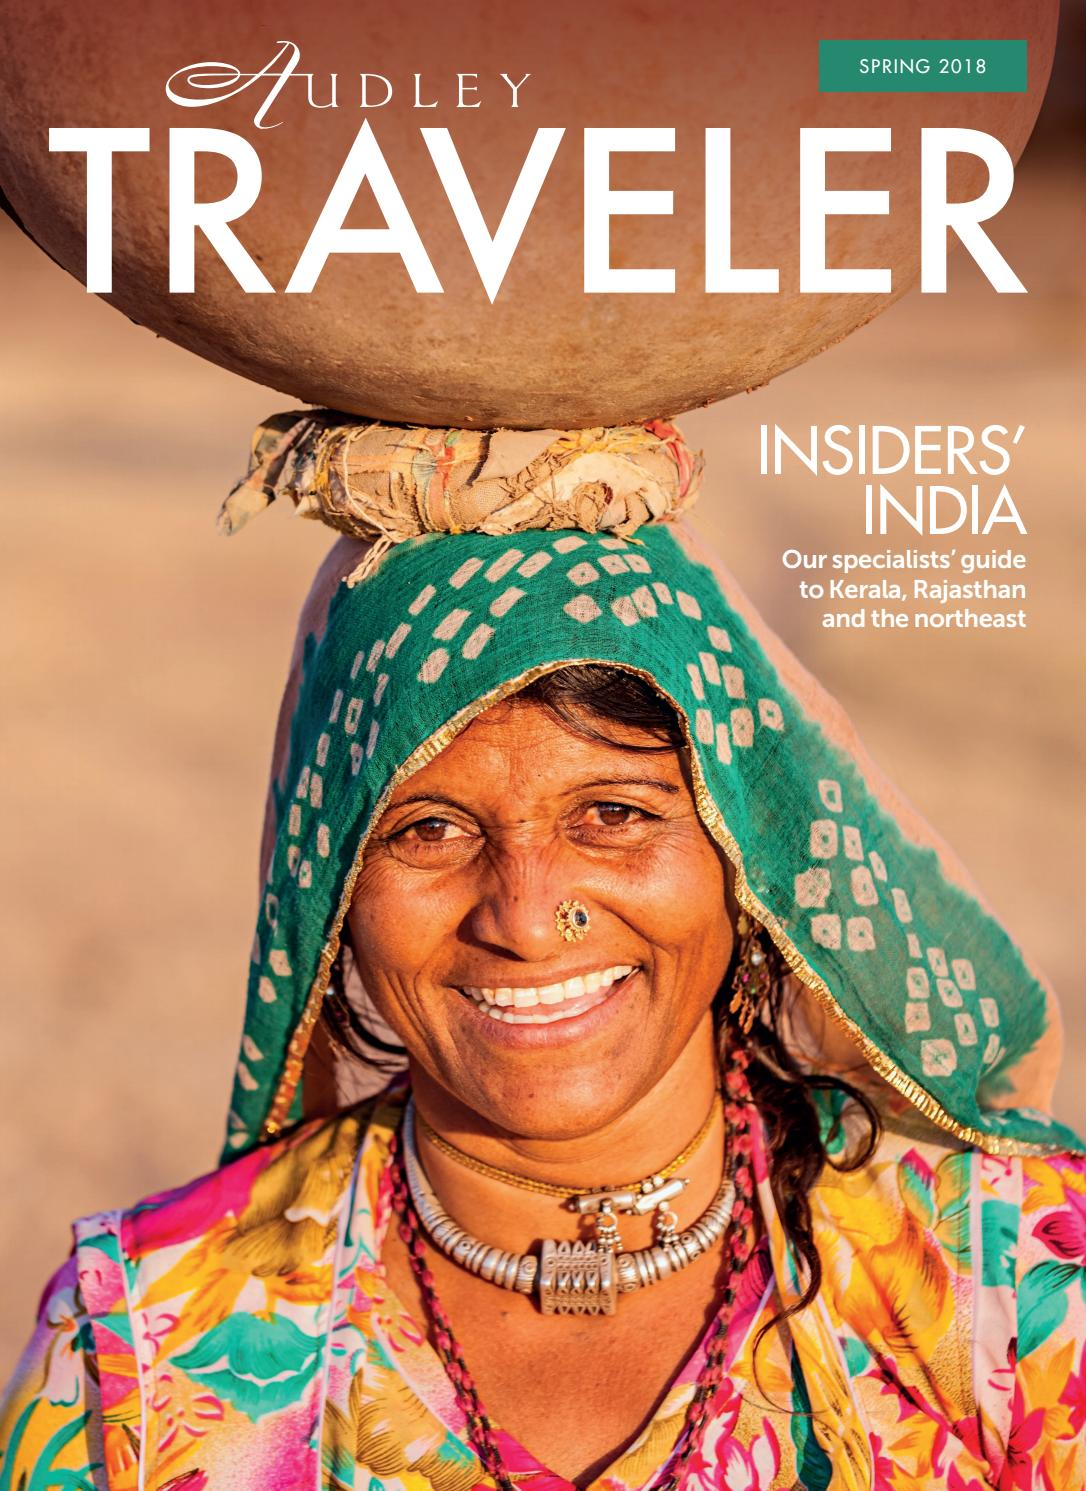 indian voyagers account - HD1086×1491